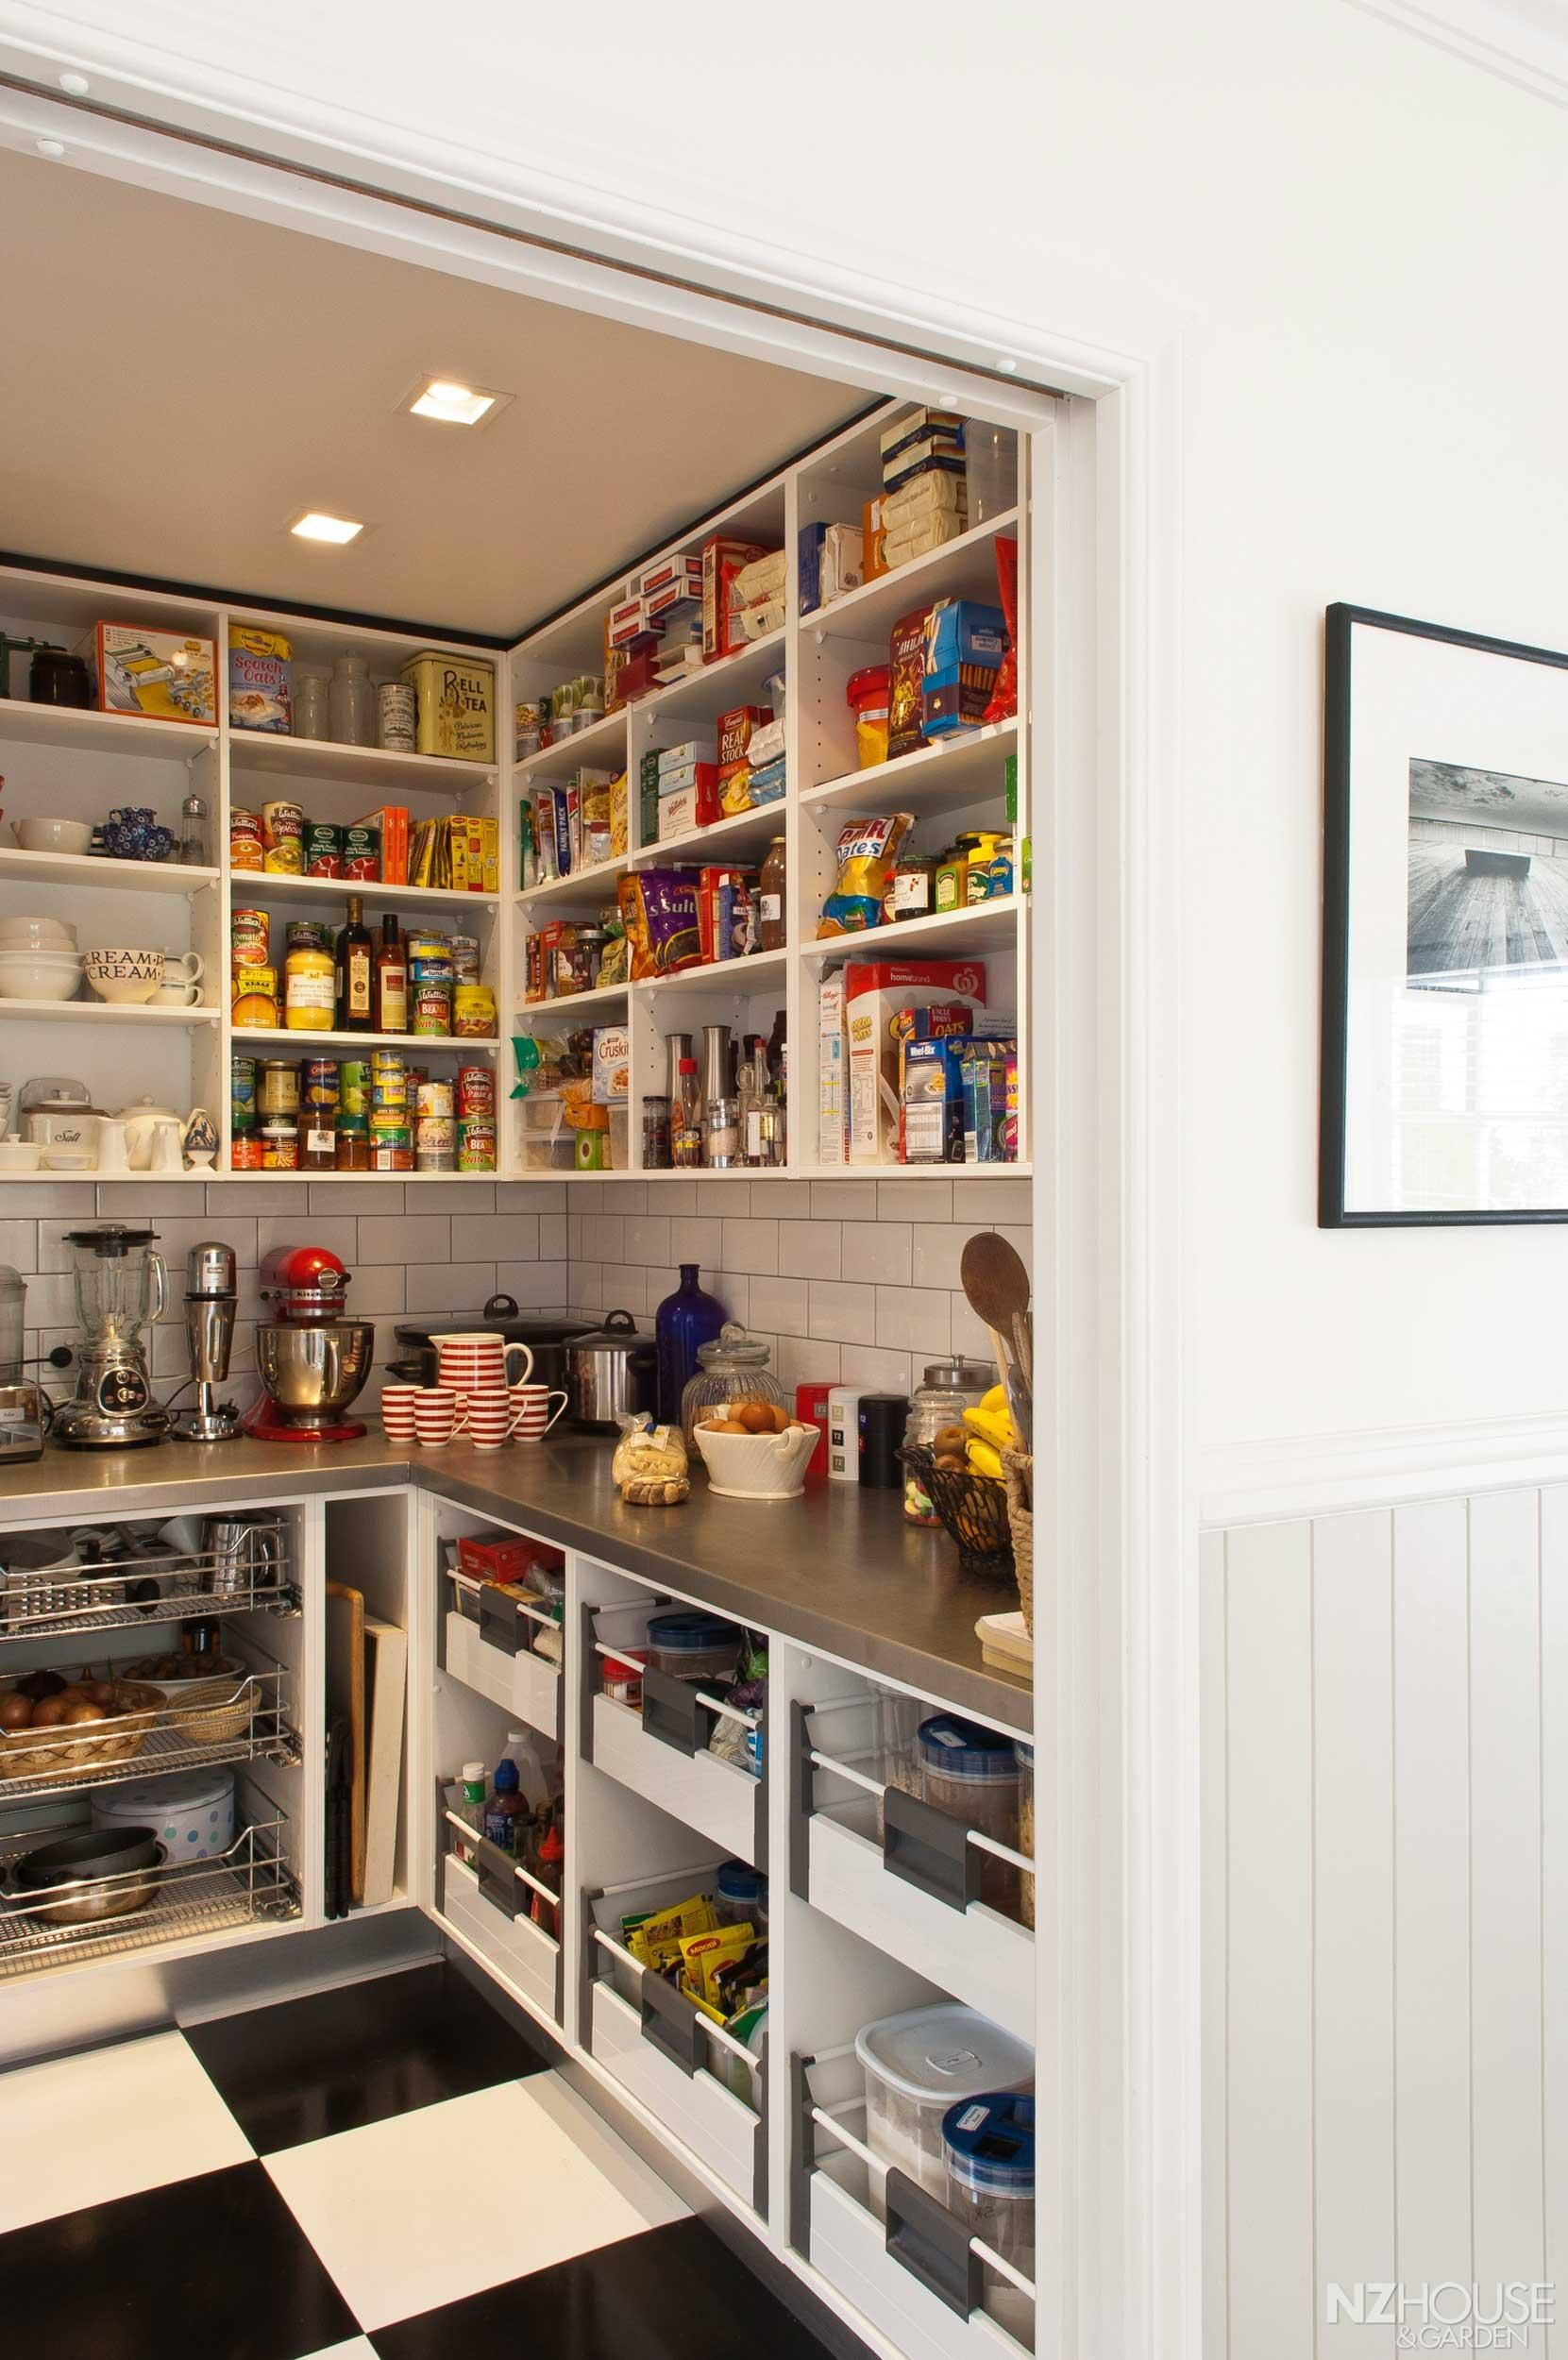 Love this pantry with counter space - it would keep the main kitchen counters clean and clutter free! & Love this pantry with counter space - it would keep the main kitchen ...